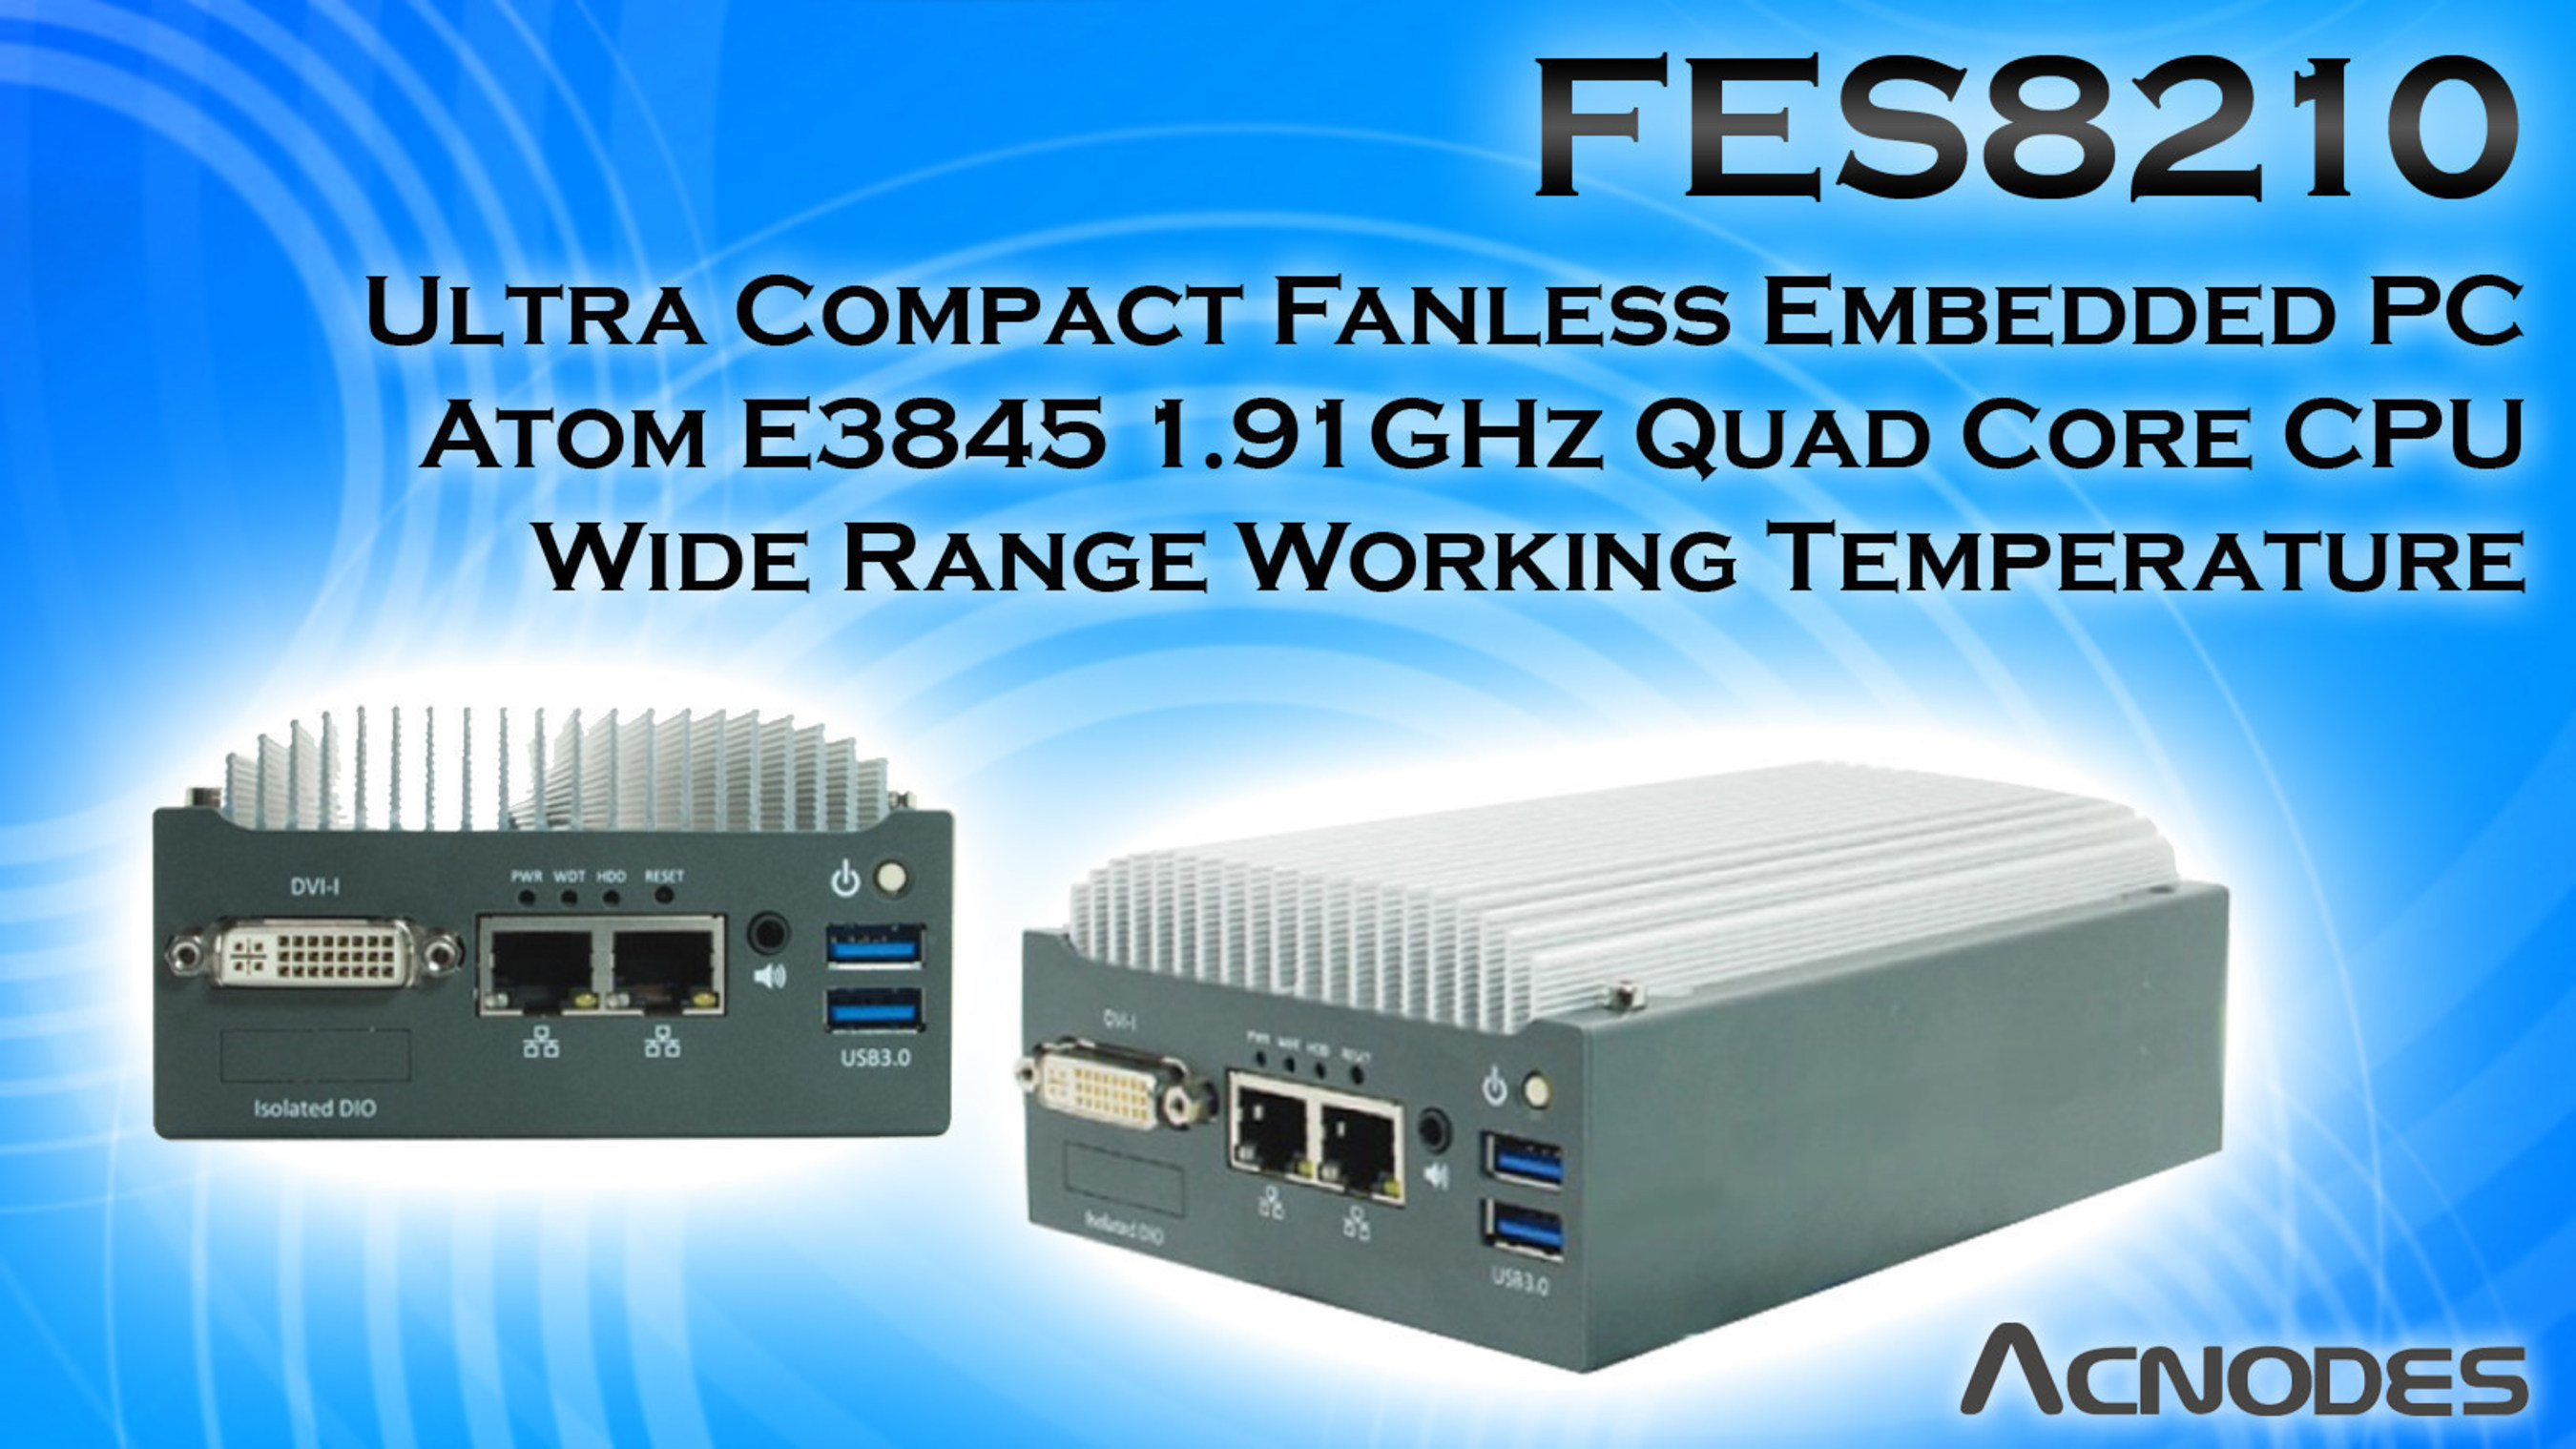 Palm Size Fanless Embedded PC for Implementation In Space Constraint Environments